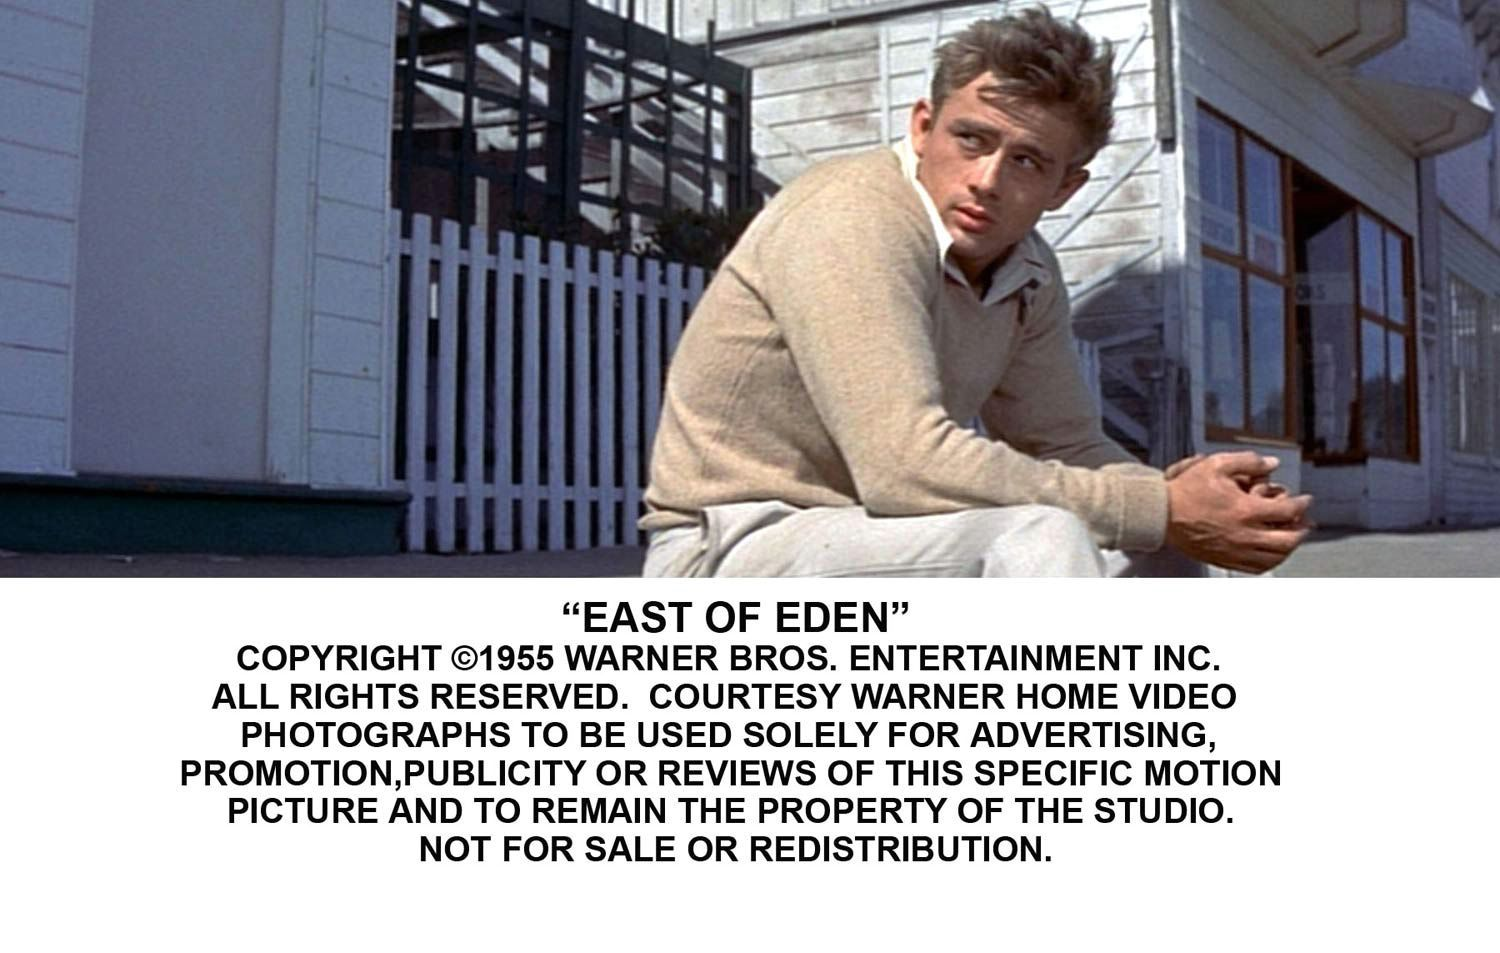 EAST OF EDEN - James Dean Photo (930820) - Fanpop